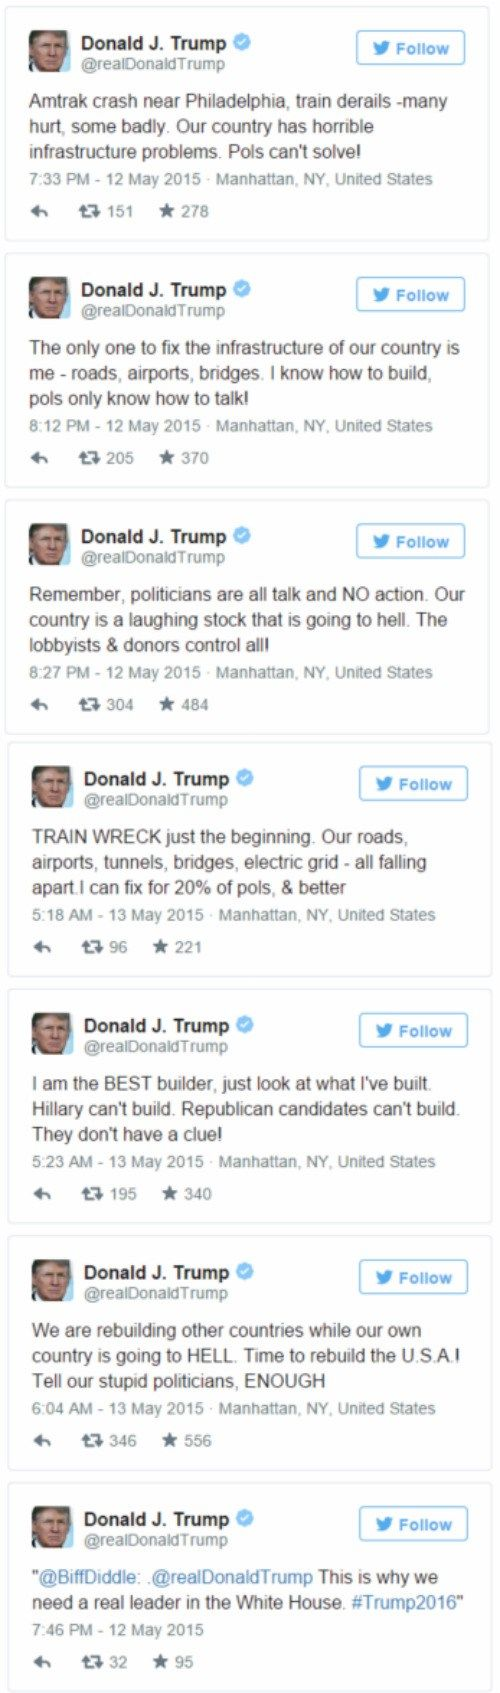 There is No National Tragedy or Disaster That Donald Trump Won't Use to Promote Himself. That second tweet has since been deleted from his main account, but that's everyone's favorite follically-challenged suit-wearing orangutan using the recent train crash in Pennsylvania as a talking point for his own political agenda. Donald Trump's Twitter Account Is the Gift That Keeps on Giving